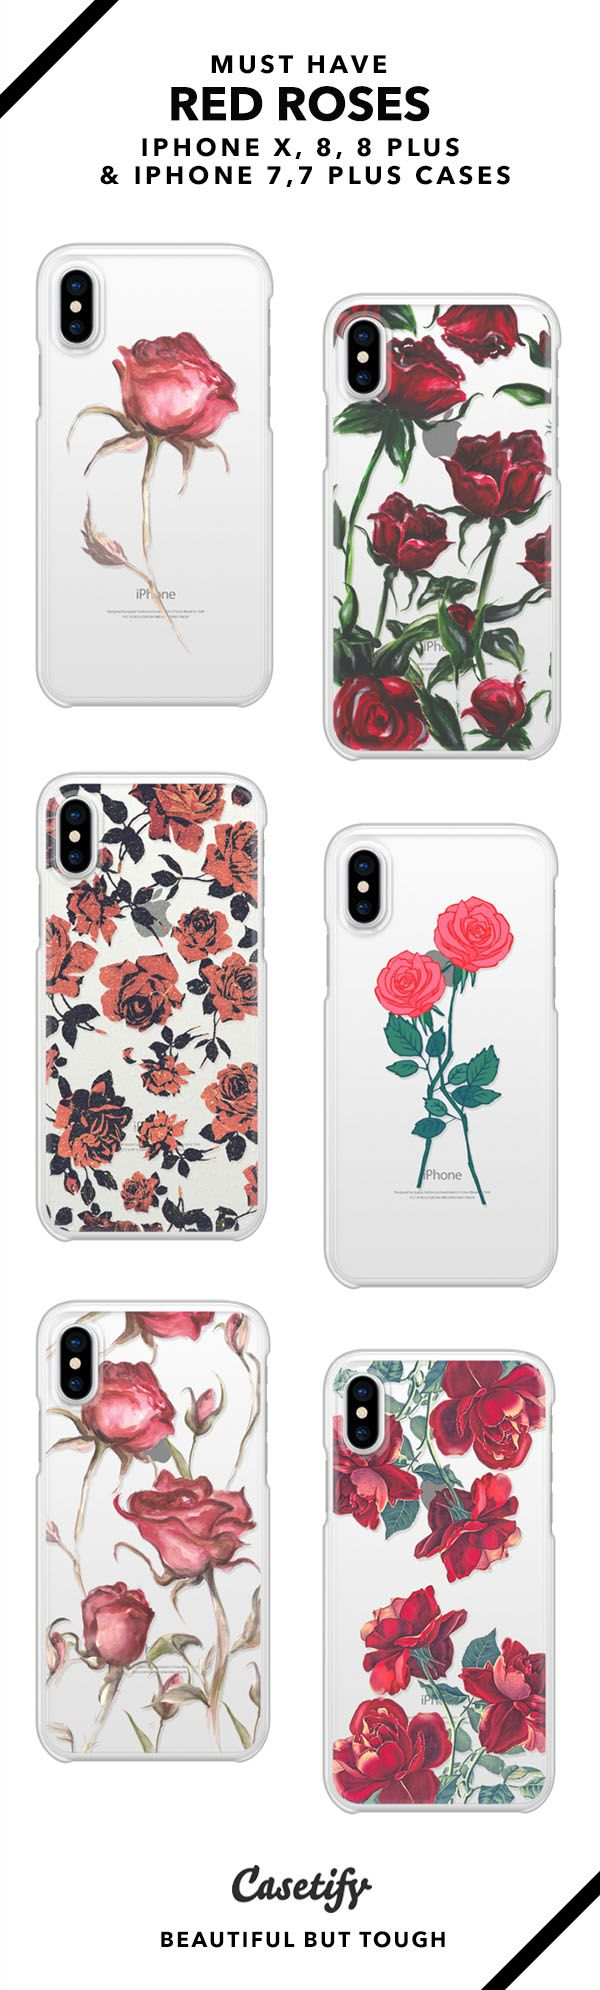 iphone 8 case red rose